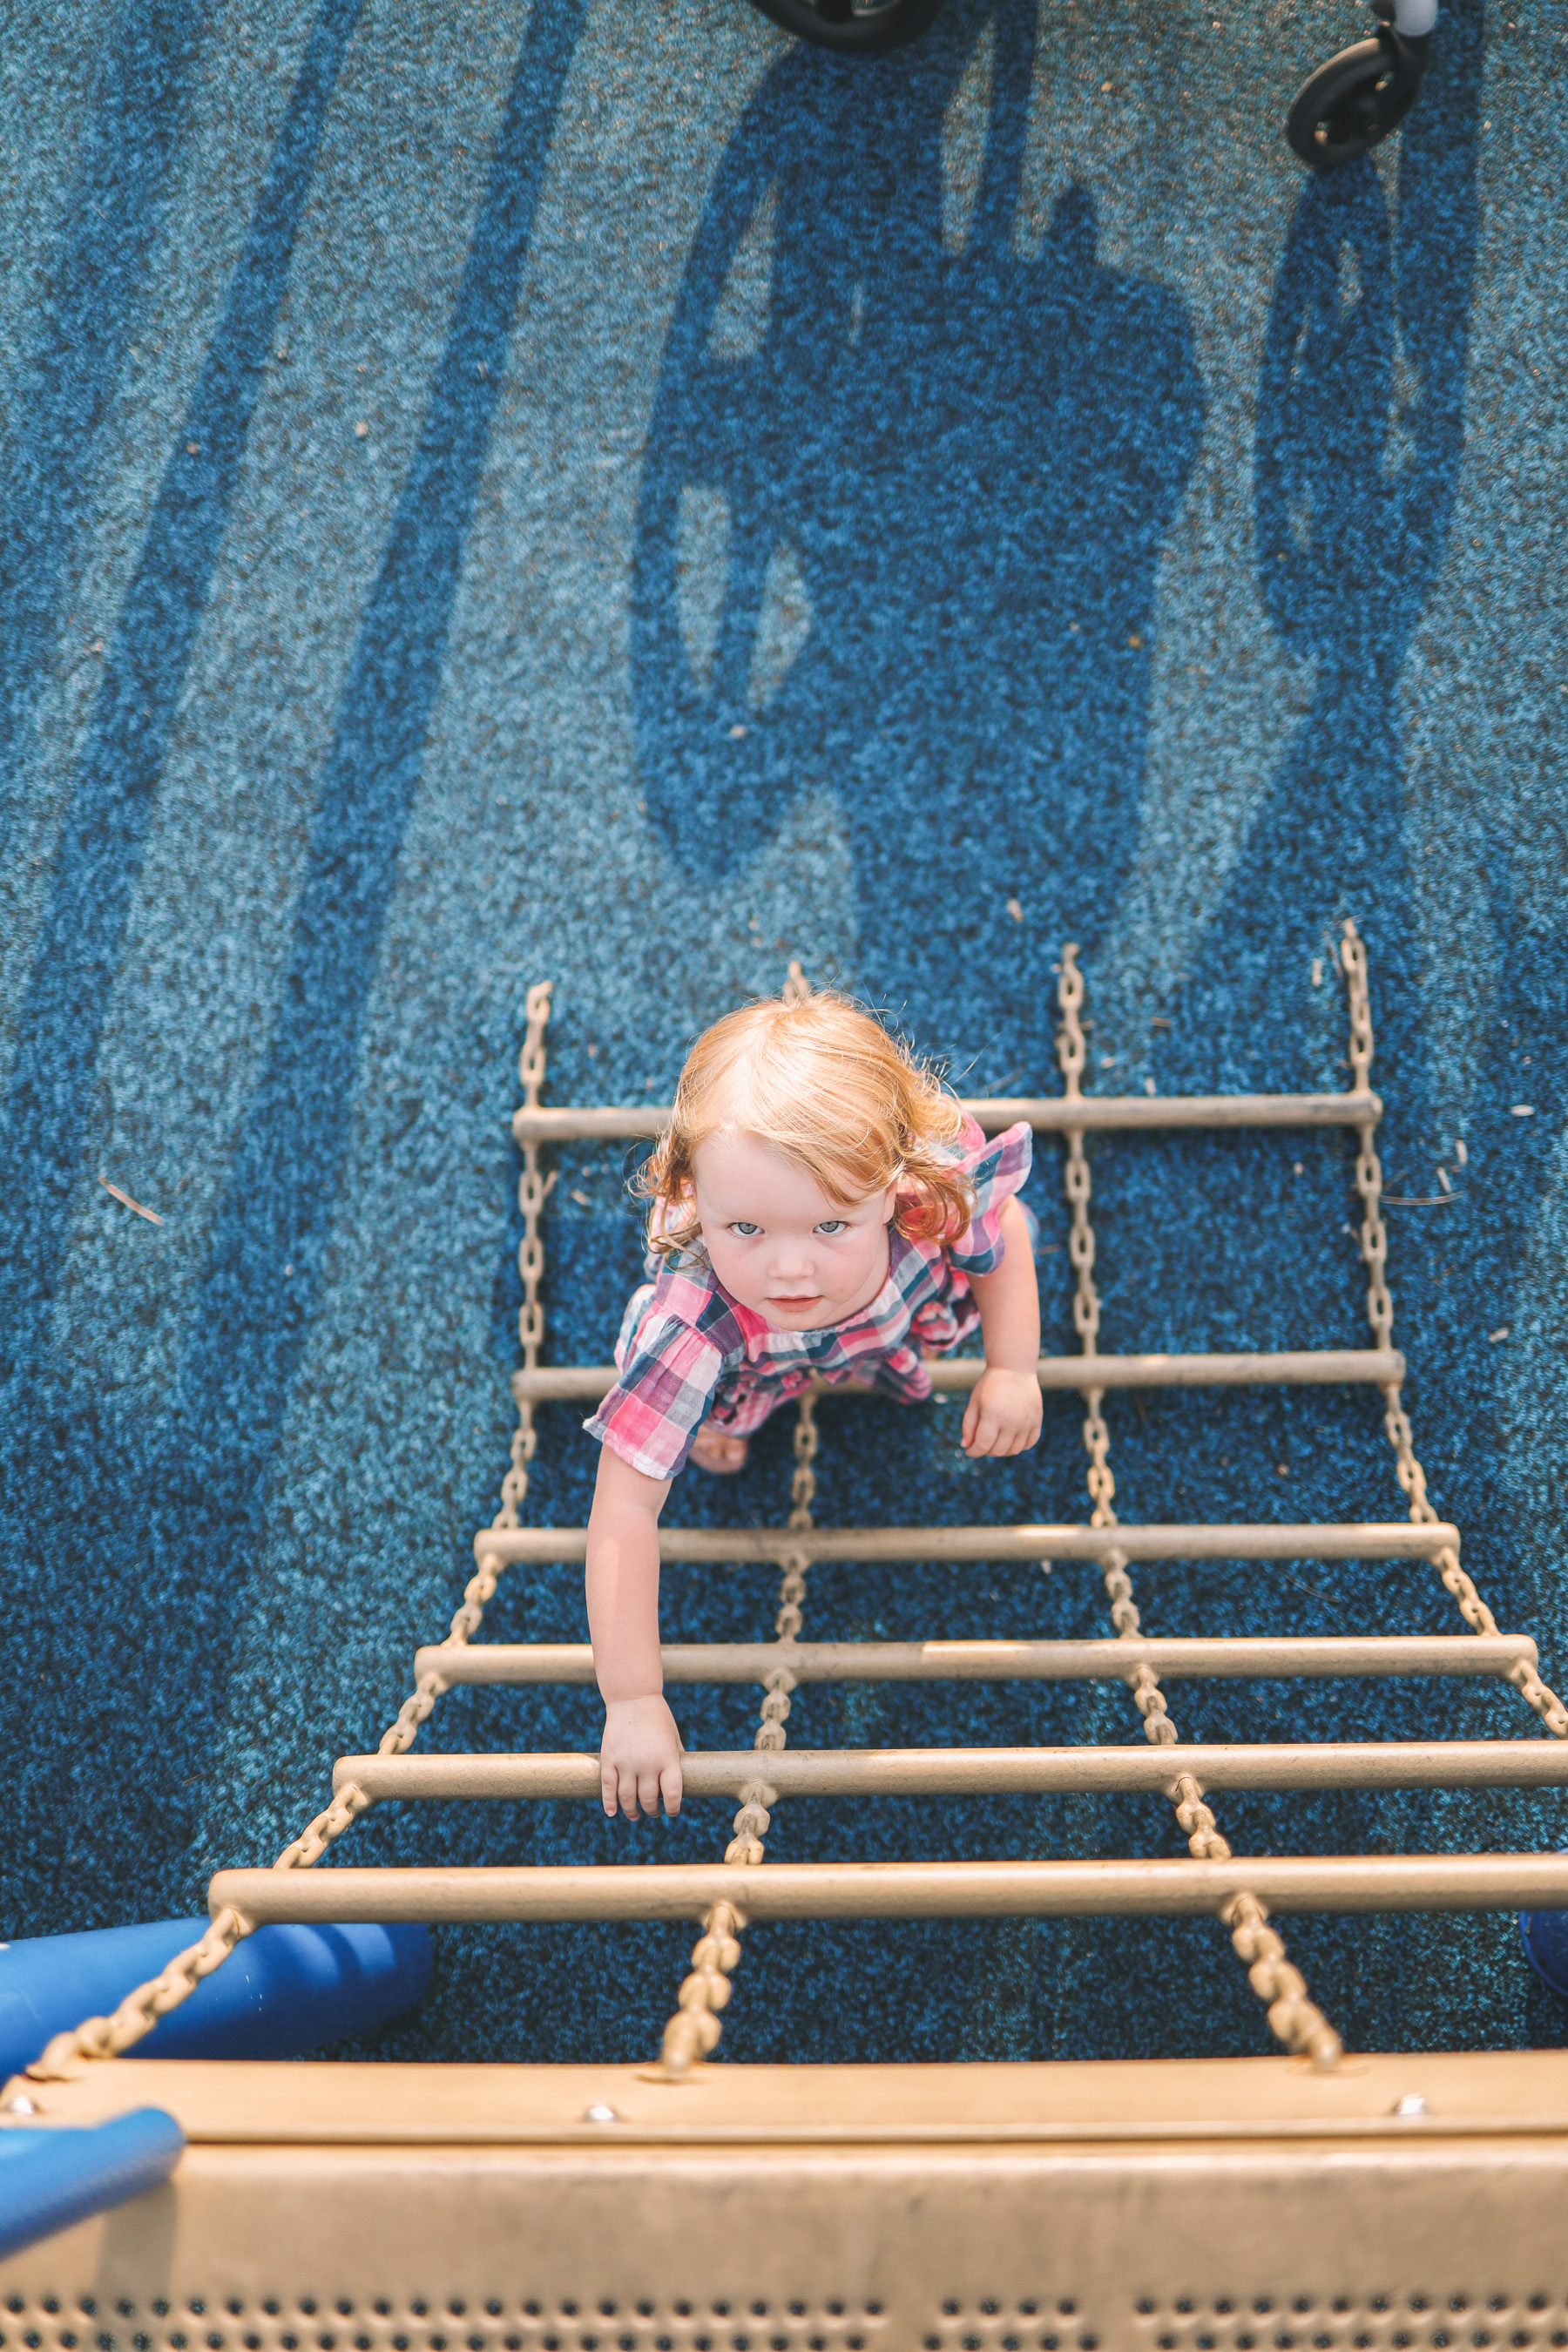 The toddler girl climbs up the playground